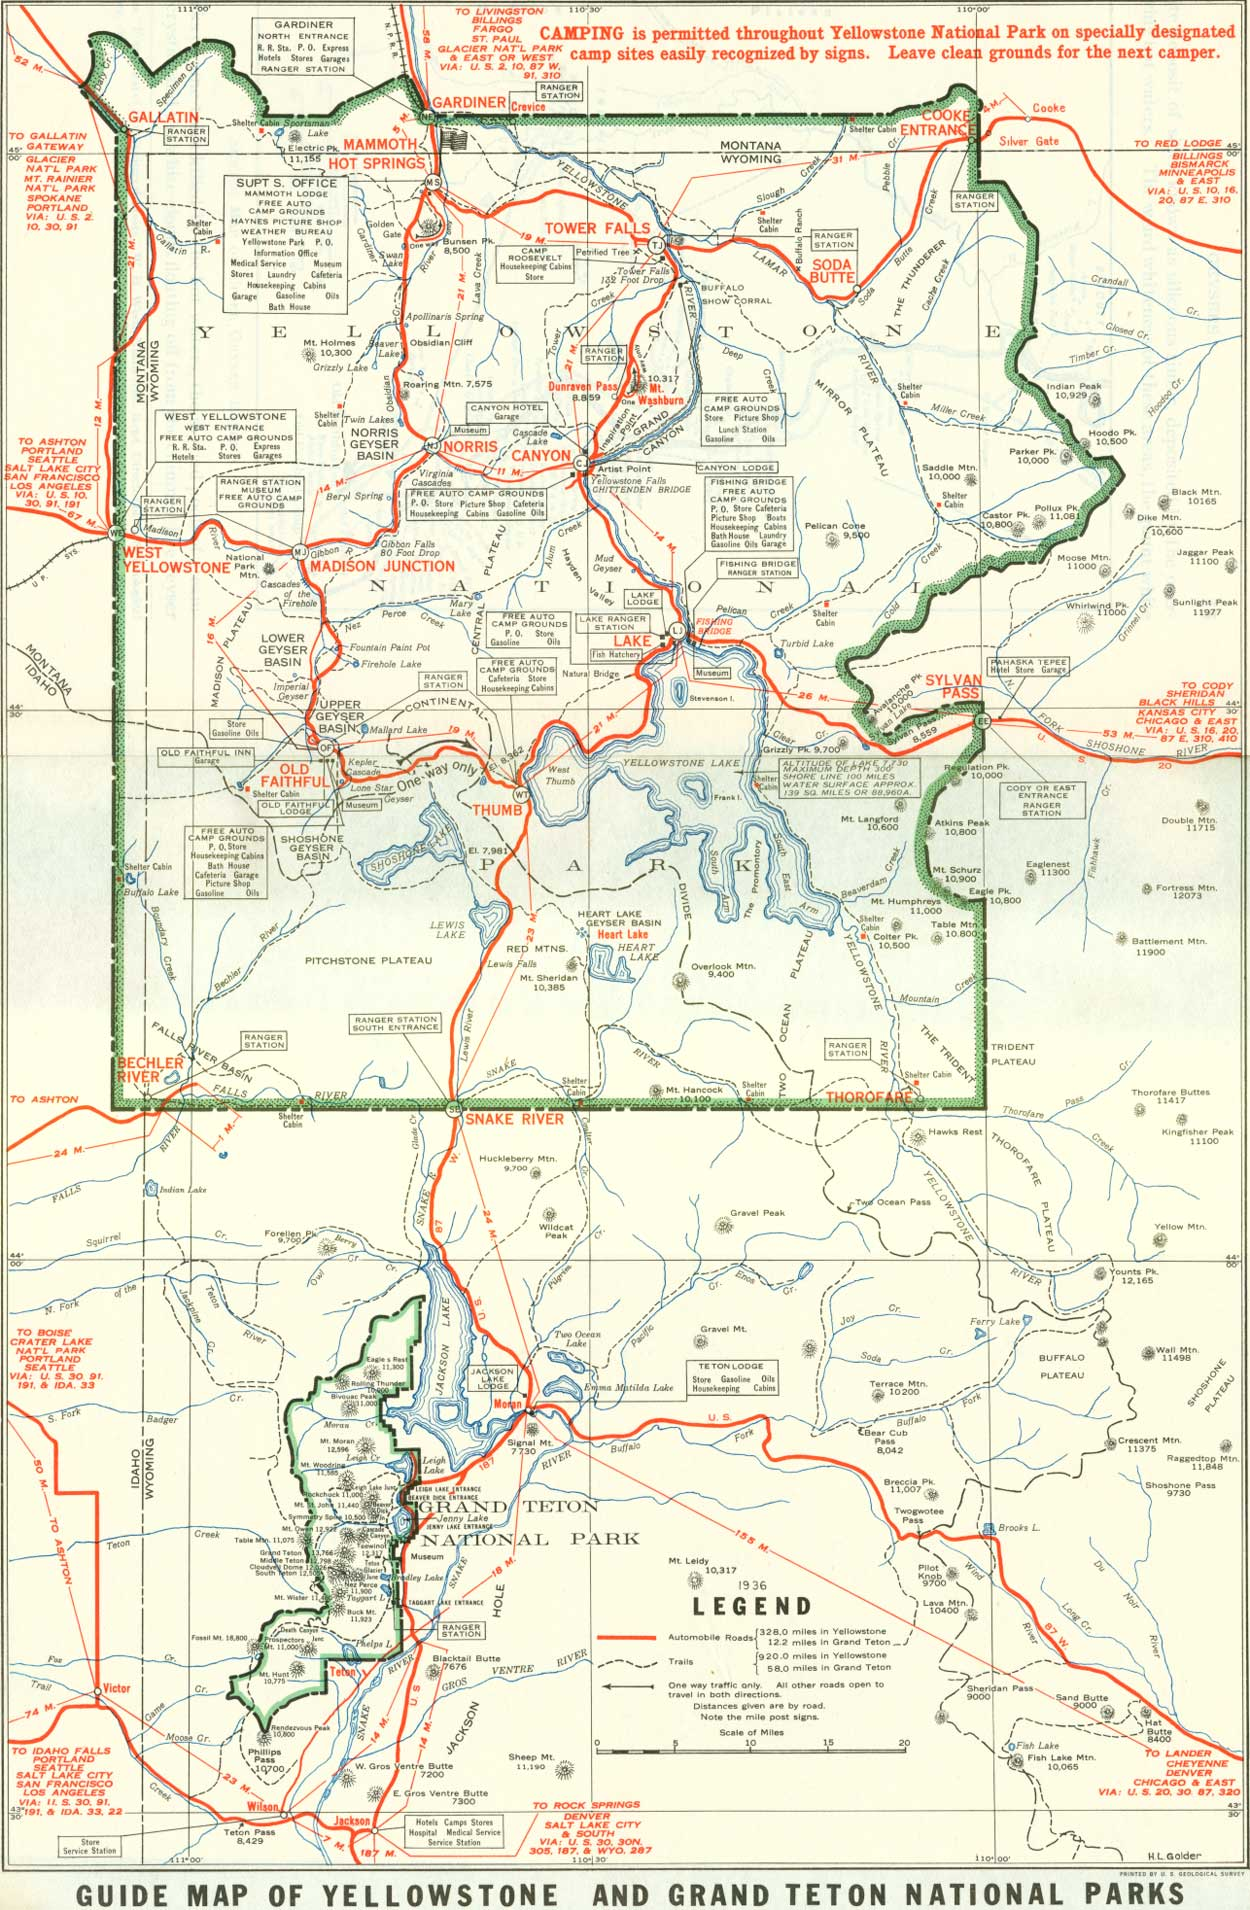 1929 Yellowstone and Grand Teton National Parks Map   Yellowstone